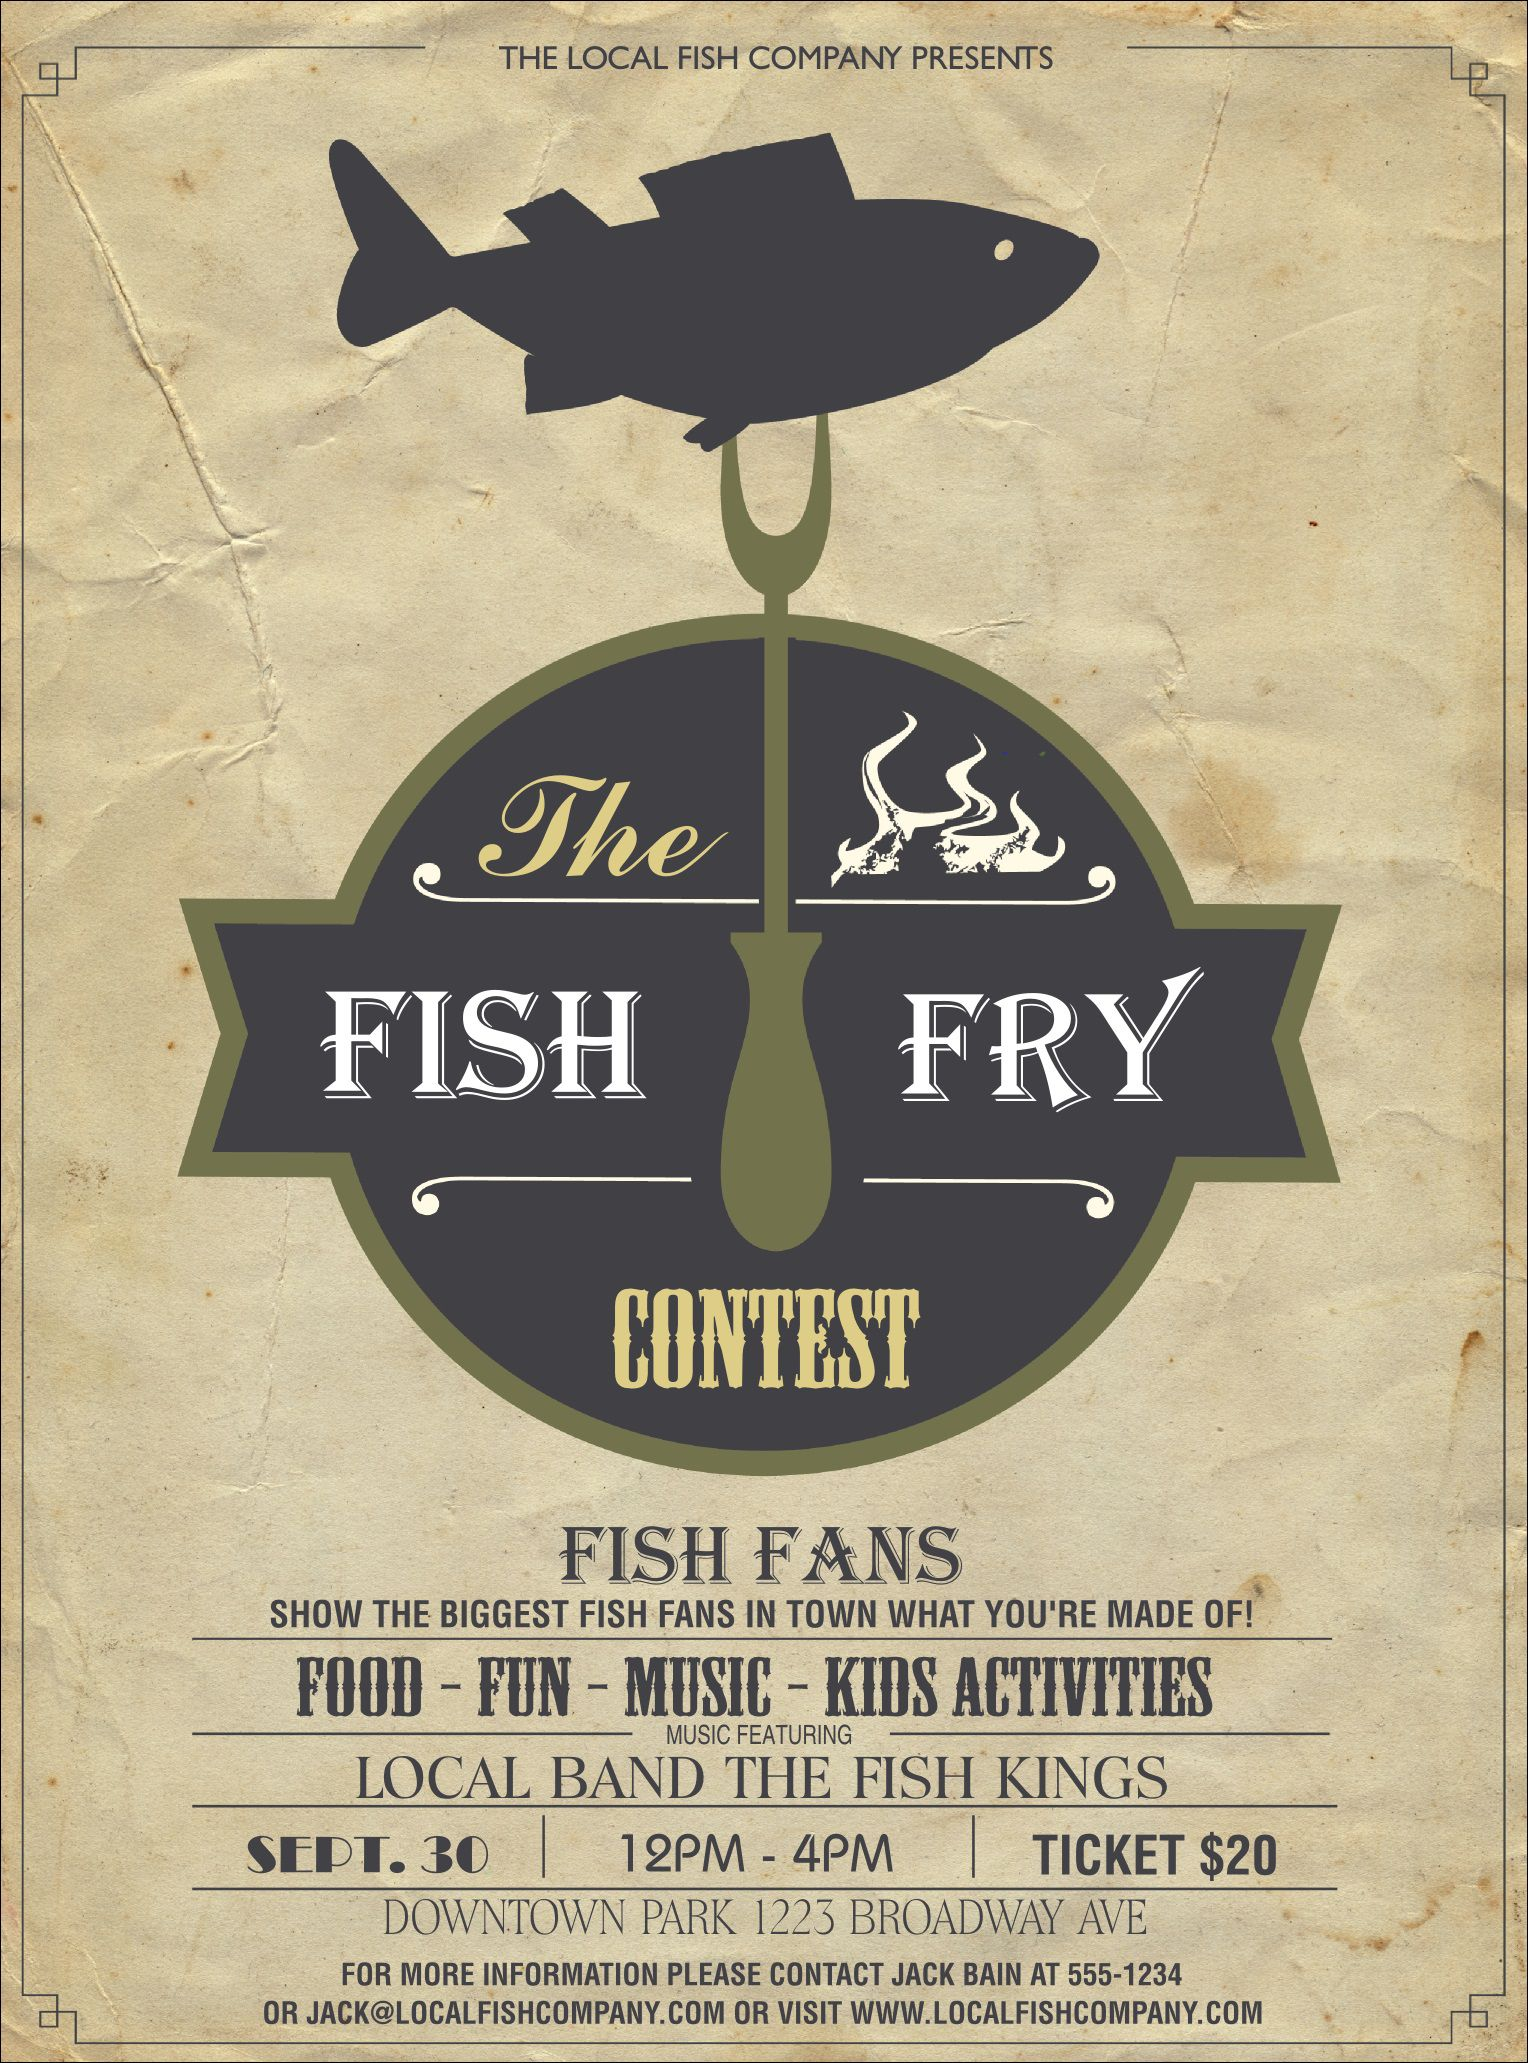 010 Excellent Fish Fry Flyer Template Picture  Printable Free Powerpoint PsdFull